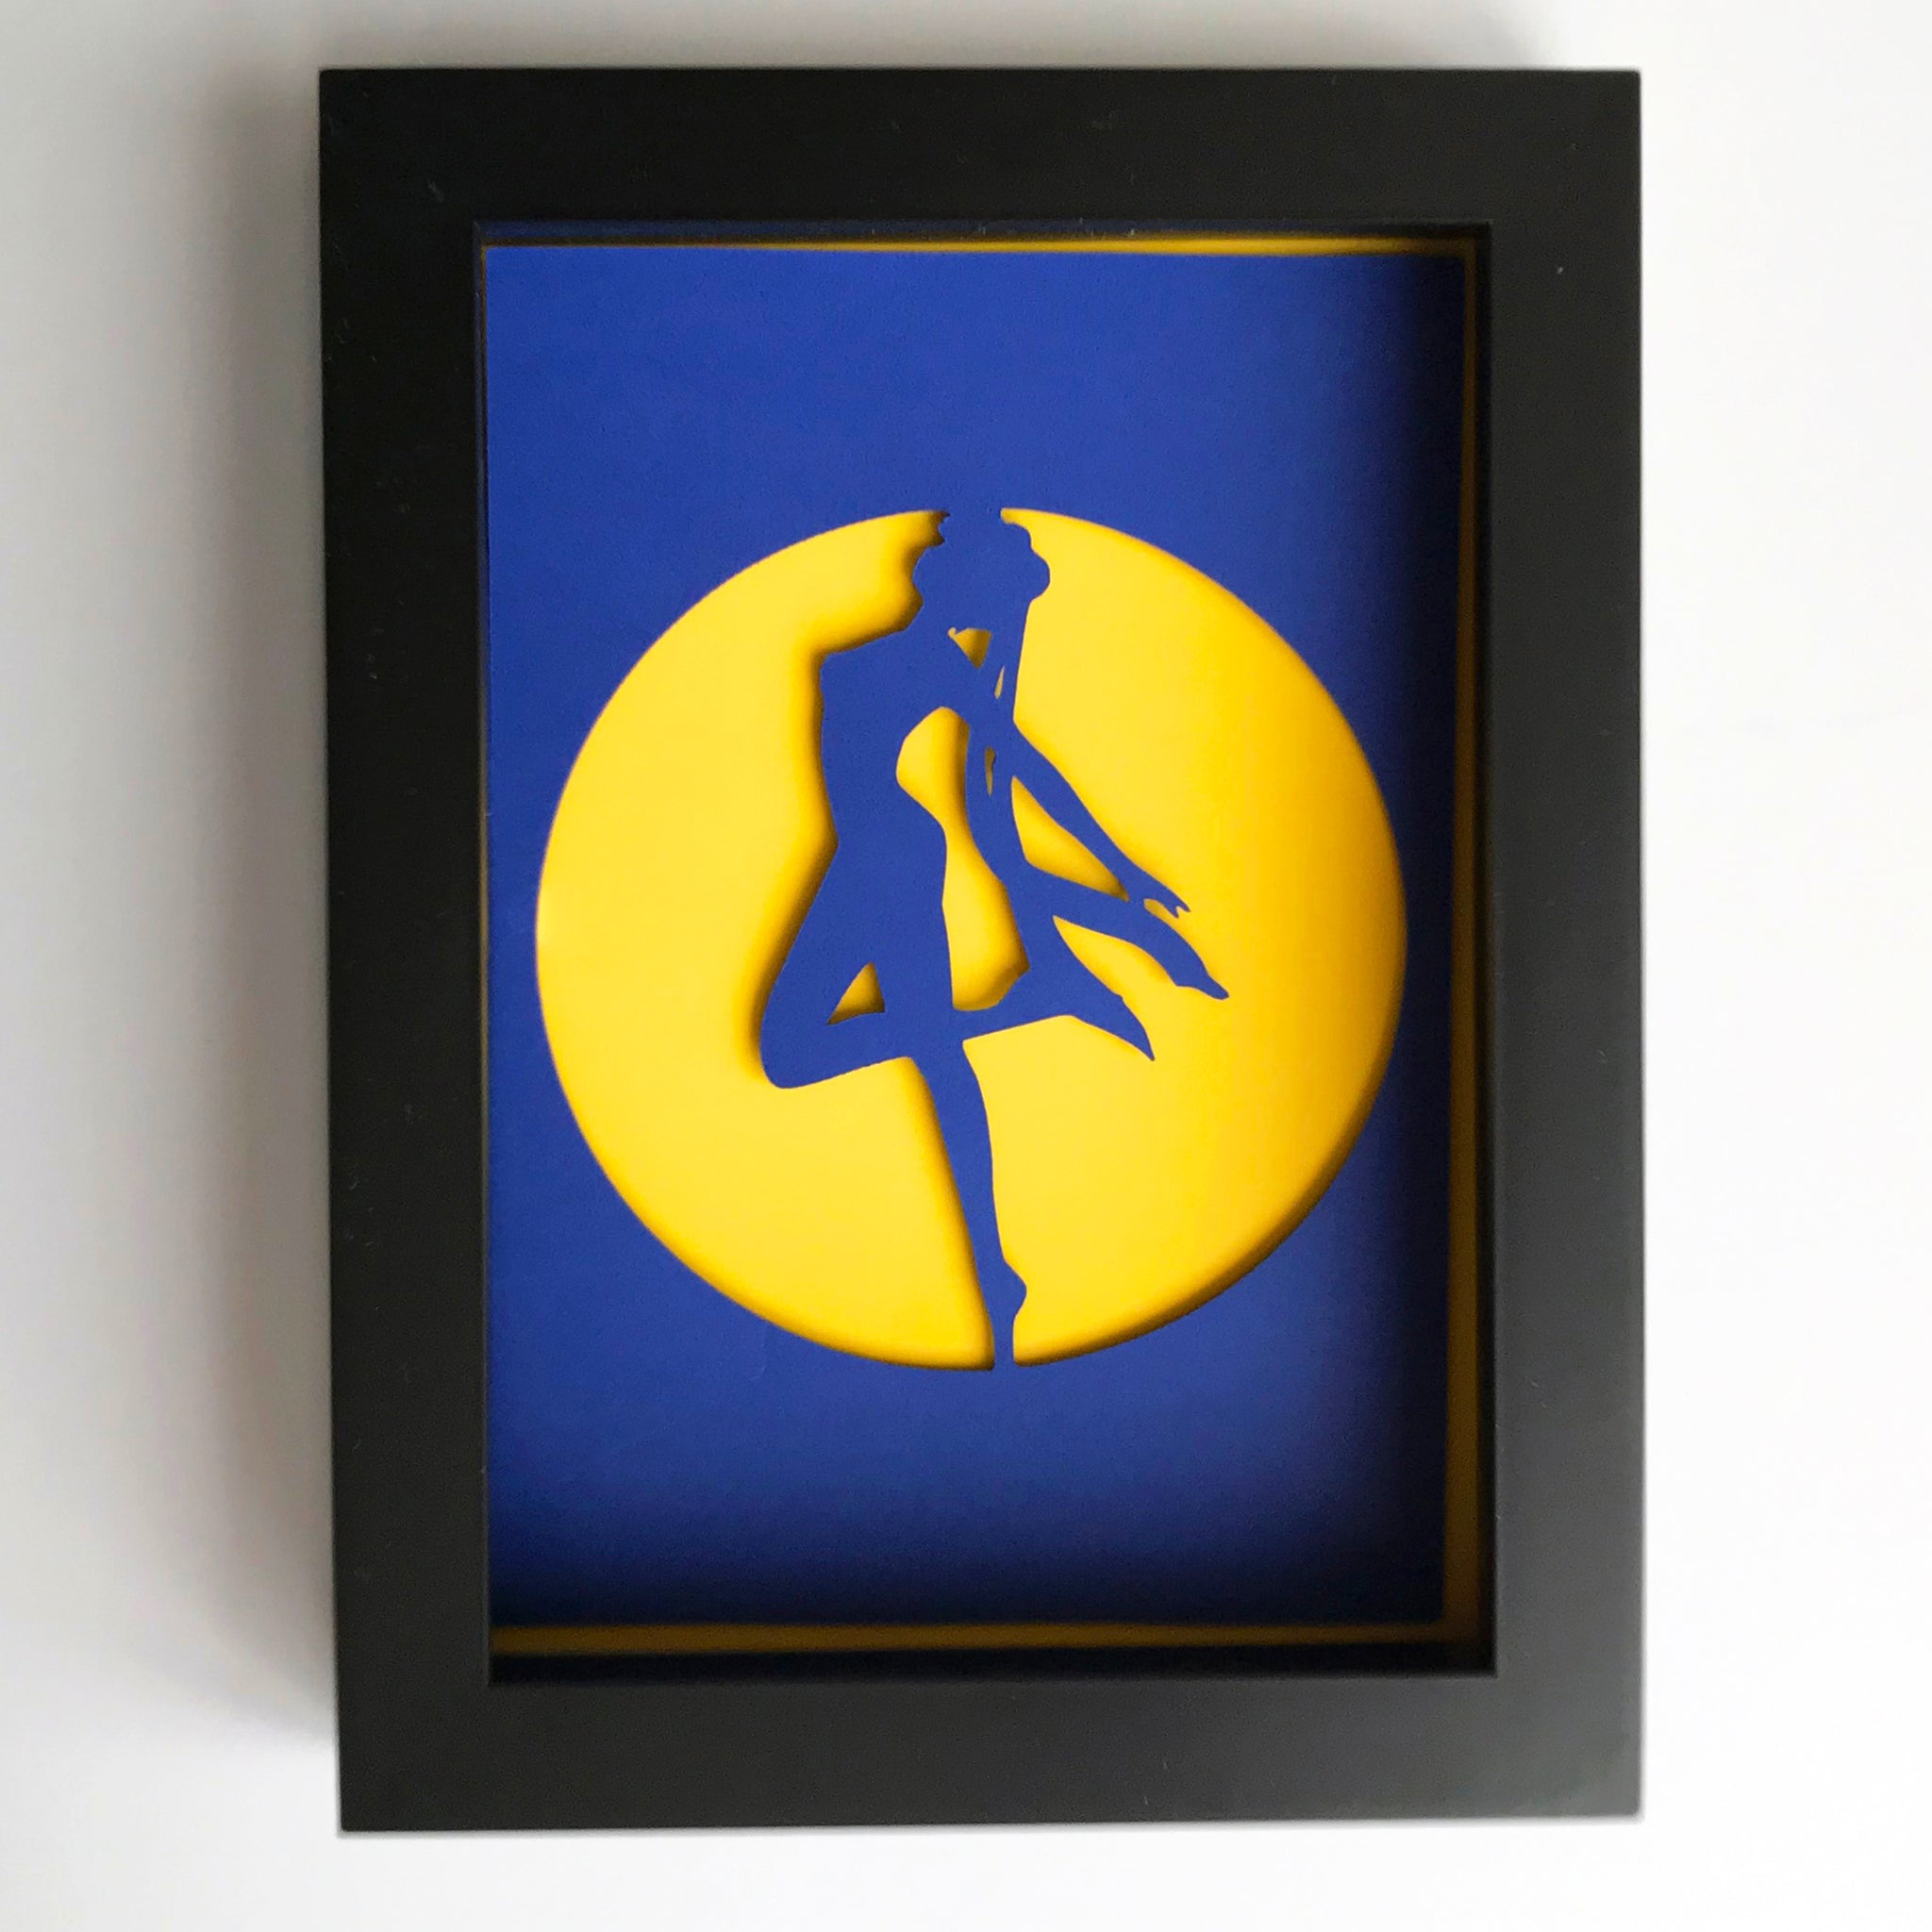 "Sailor Moon - 5""x7"" Shaowbox PaperCut"